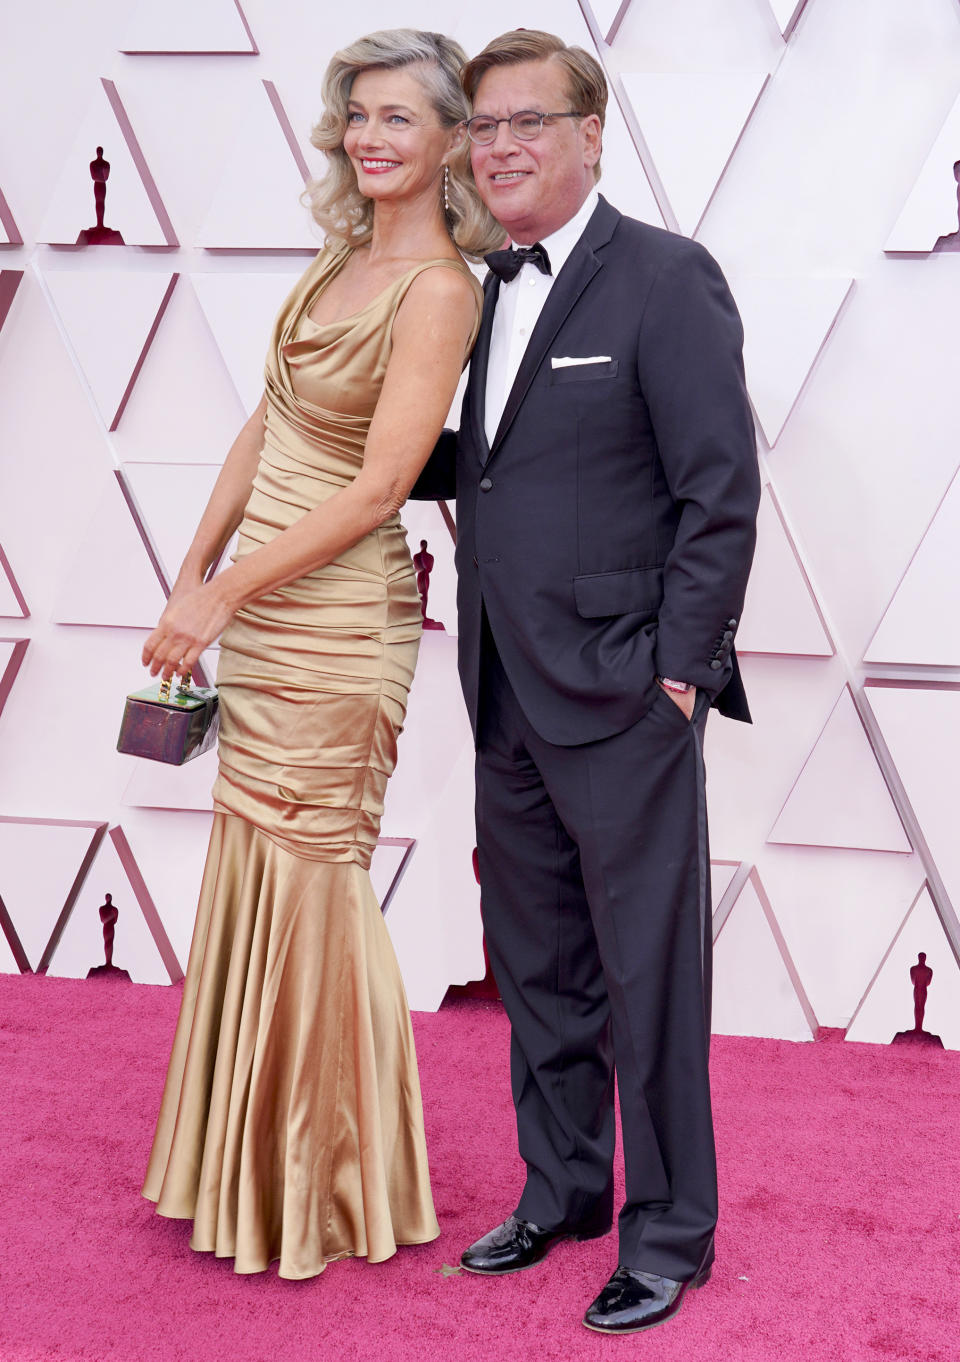 Paulina Porizkova and Aaron Sorkin attend the 93rd Annual Academy Awards at Union Station in Los Angeles. (Getty Images)